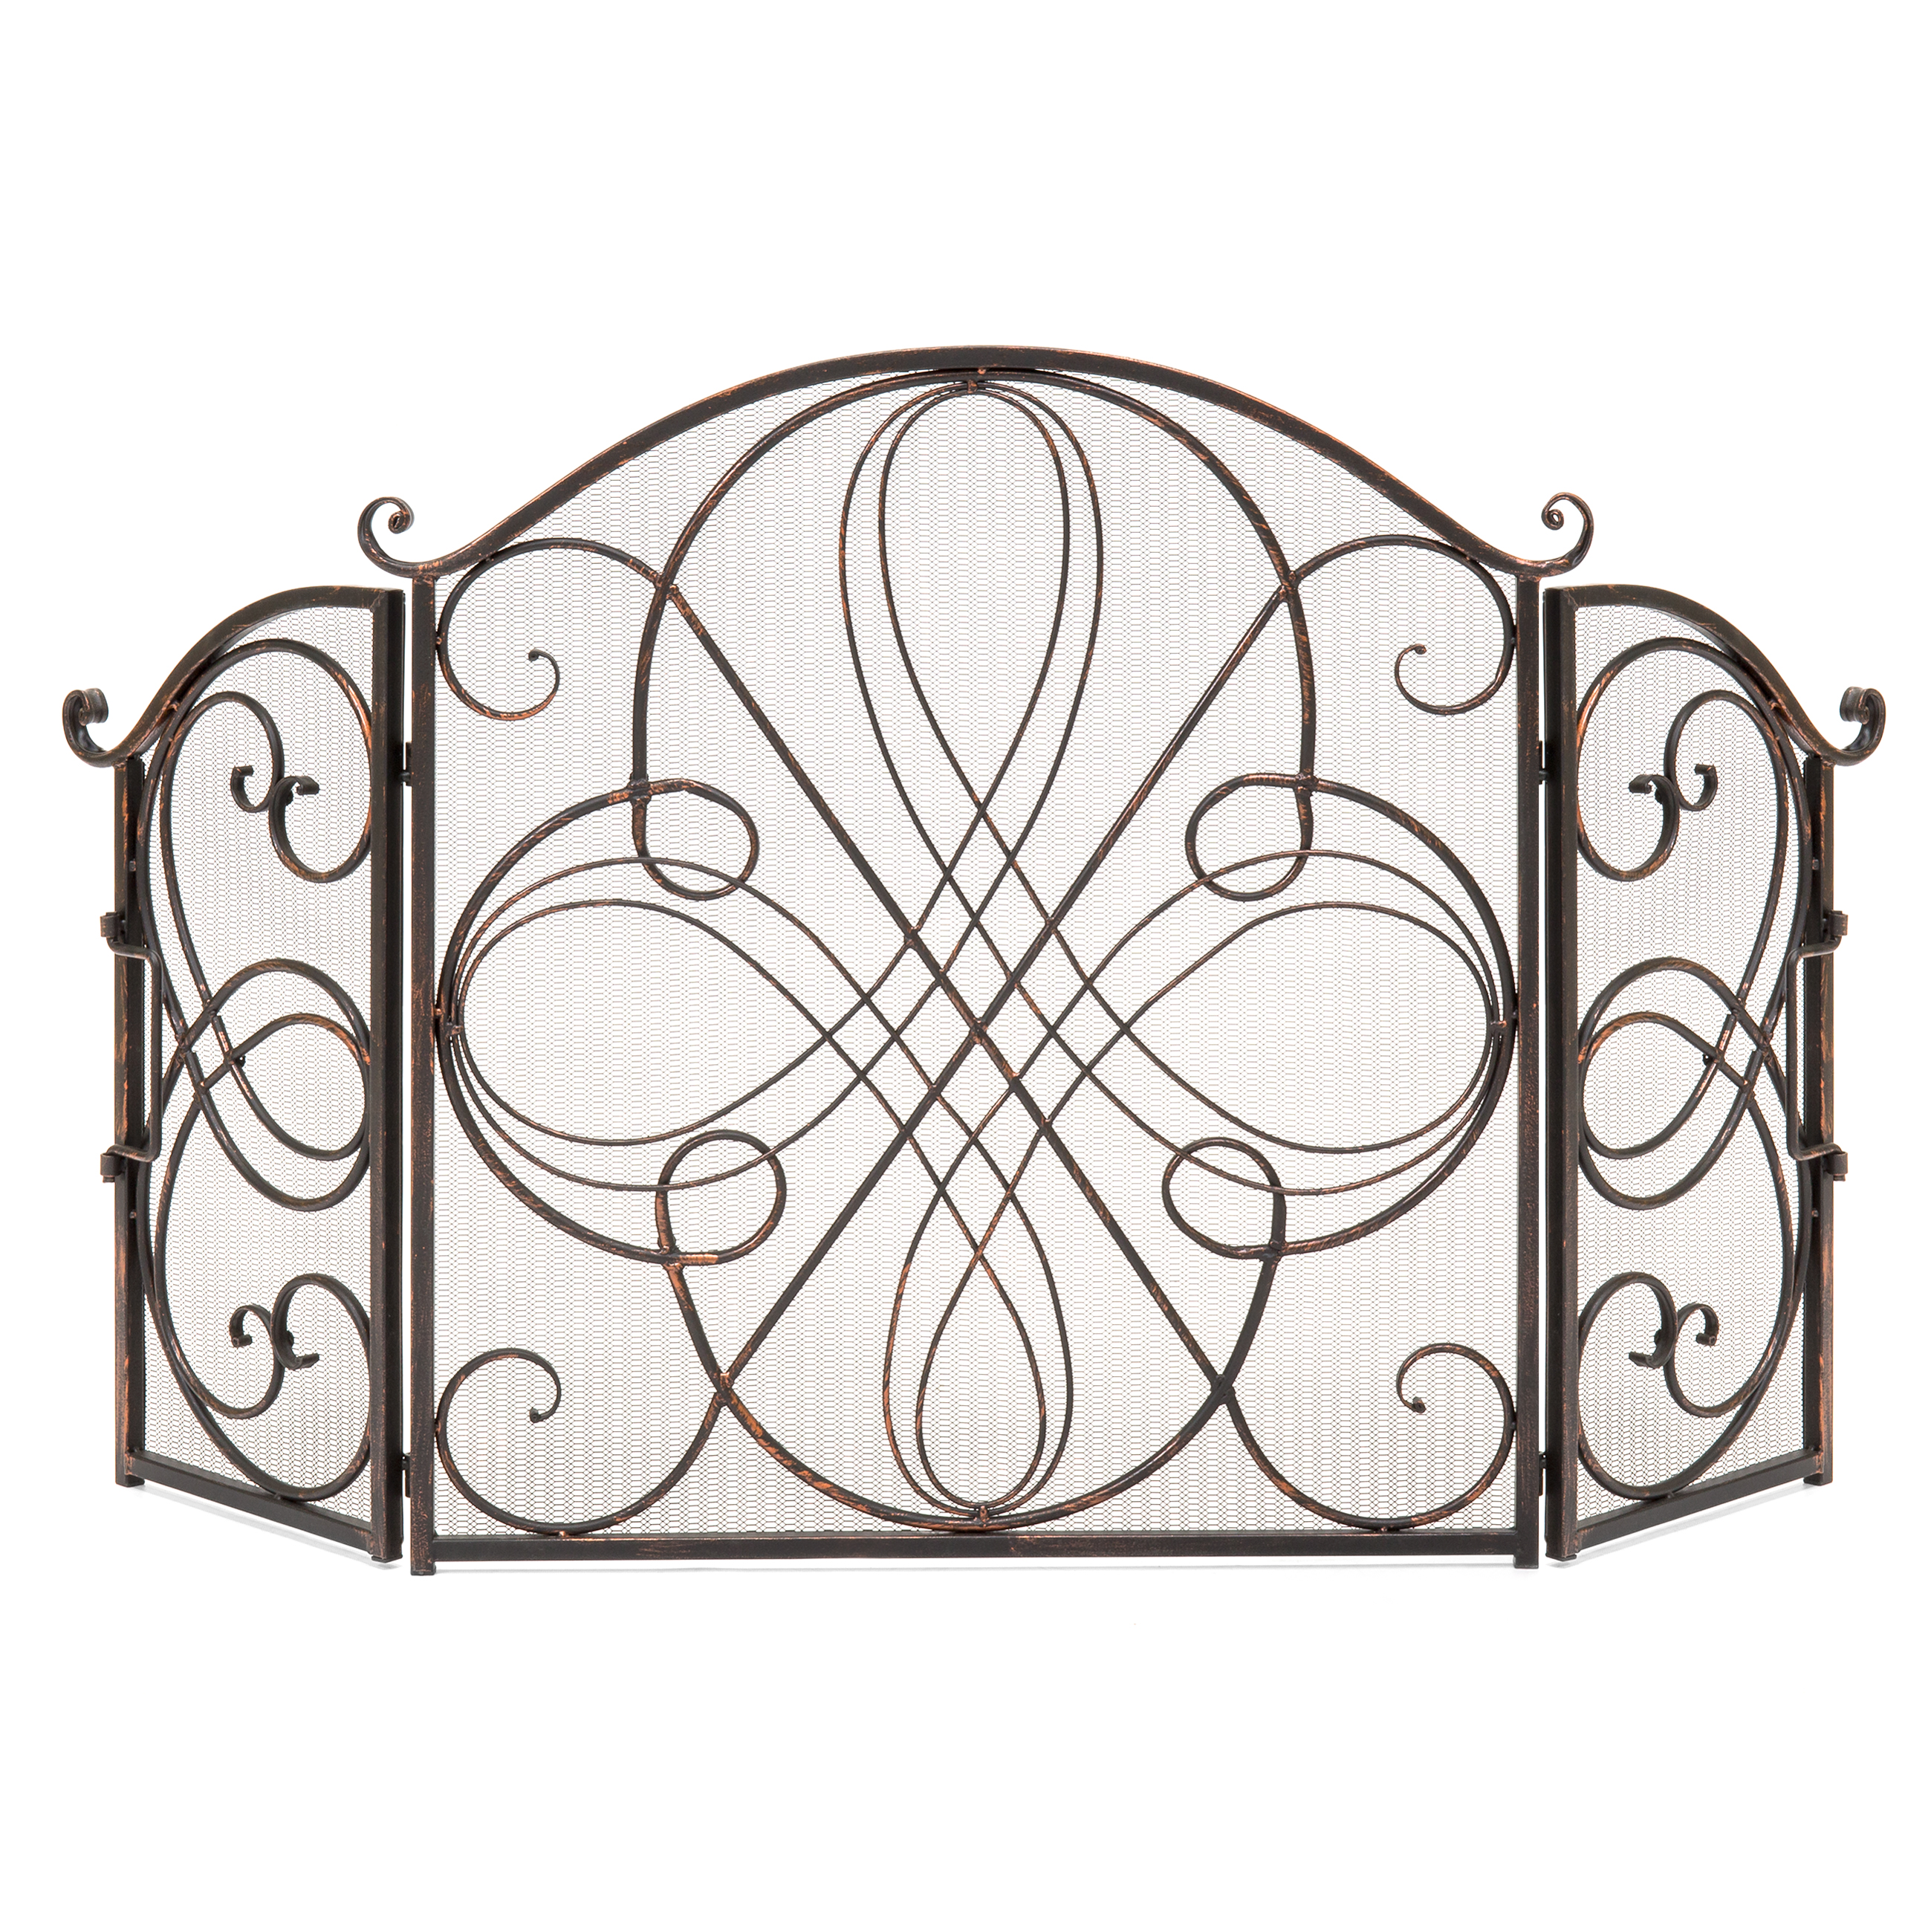 Best Choice Products 3-Panel Solid Wrought Iron See-Through Metal Fireplace Safety Screen Protector Decorative Scroll Spark Guard Cover - Antique Bronze